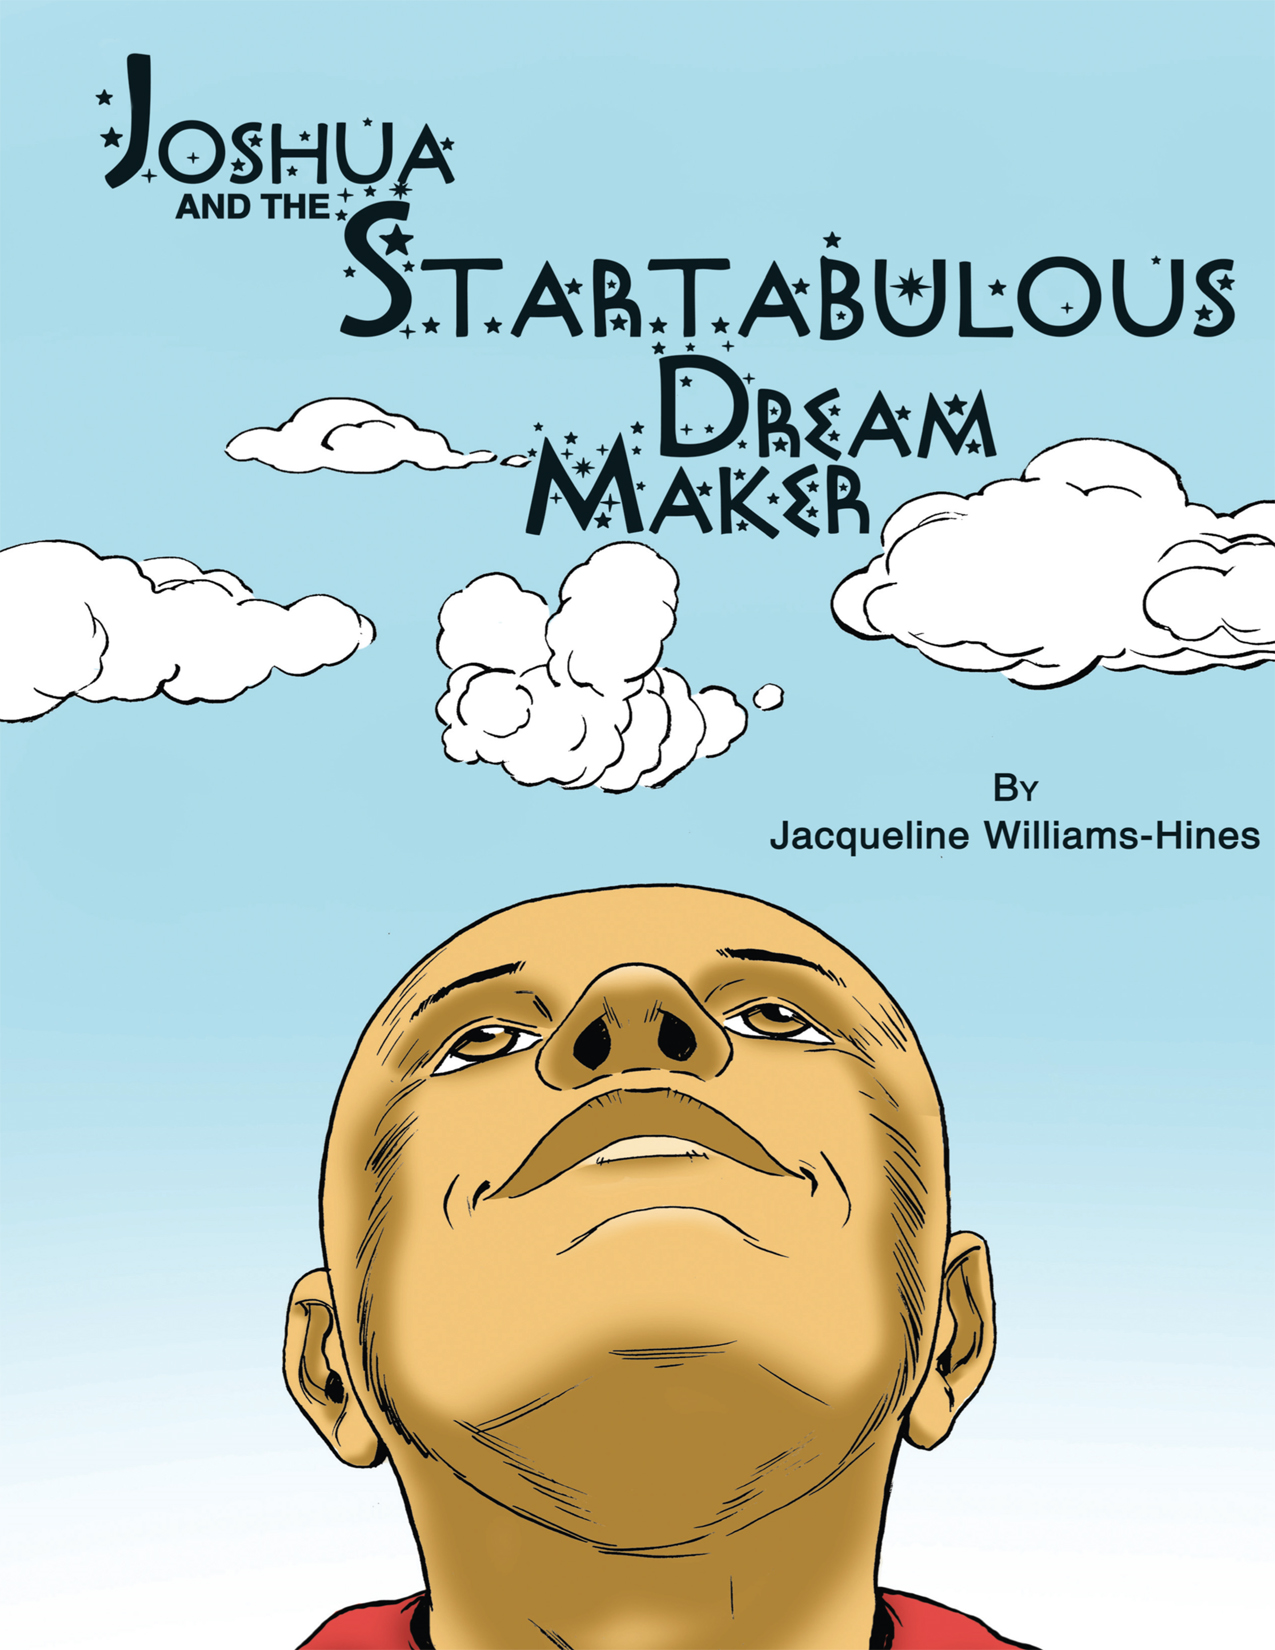 Joshua and The Startabulous Dream Maker